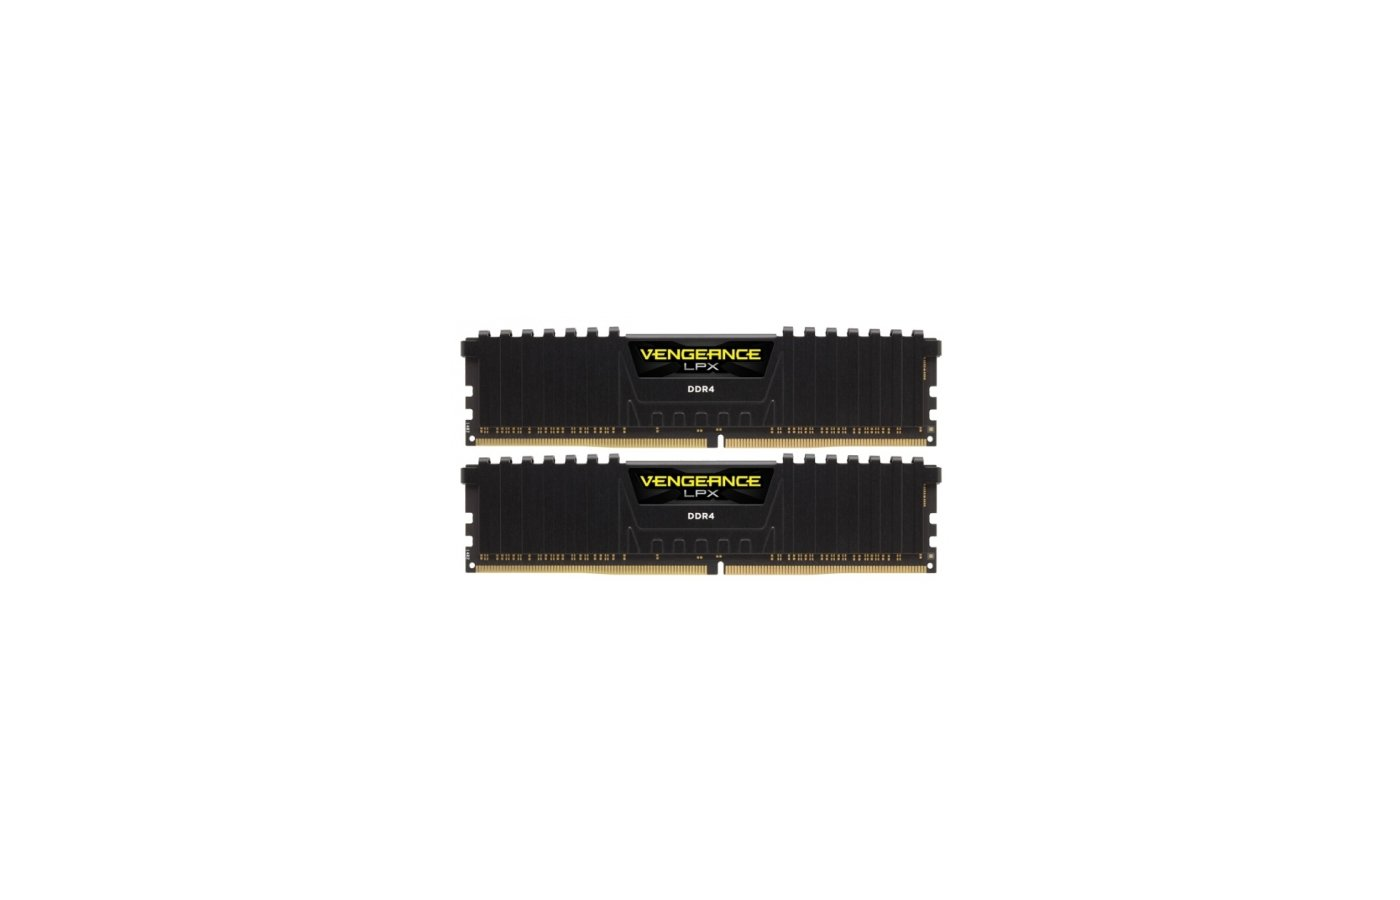 Оперативная память Corsair CMK16GX4M2A2400C16 RTL PC4-19200 DDR4 2x8Gb 2400MHz CL16 DIMM